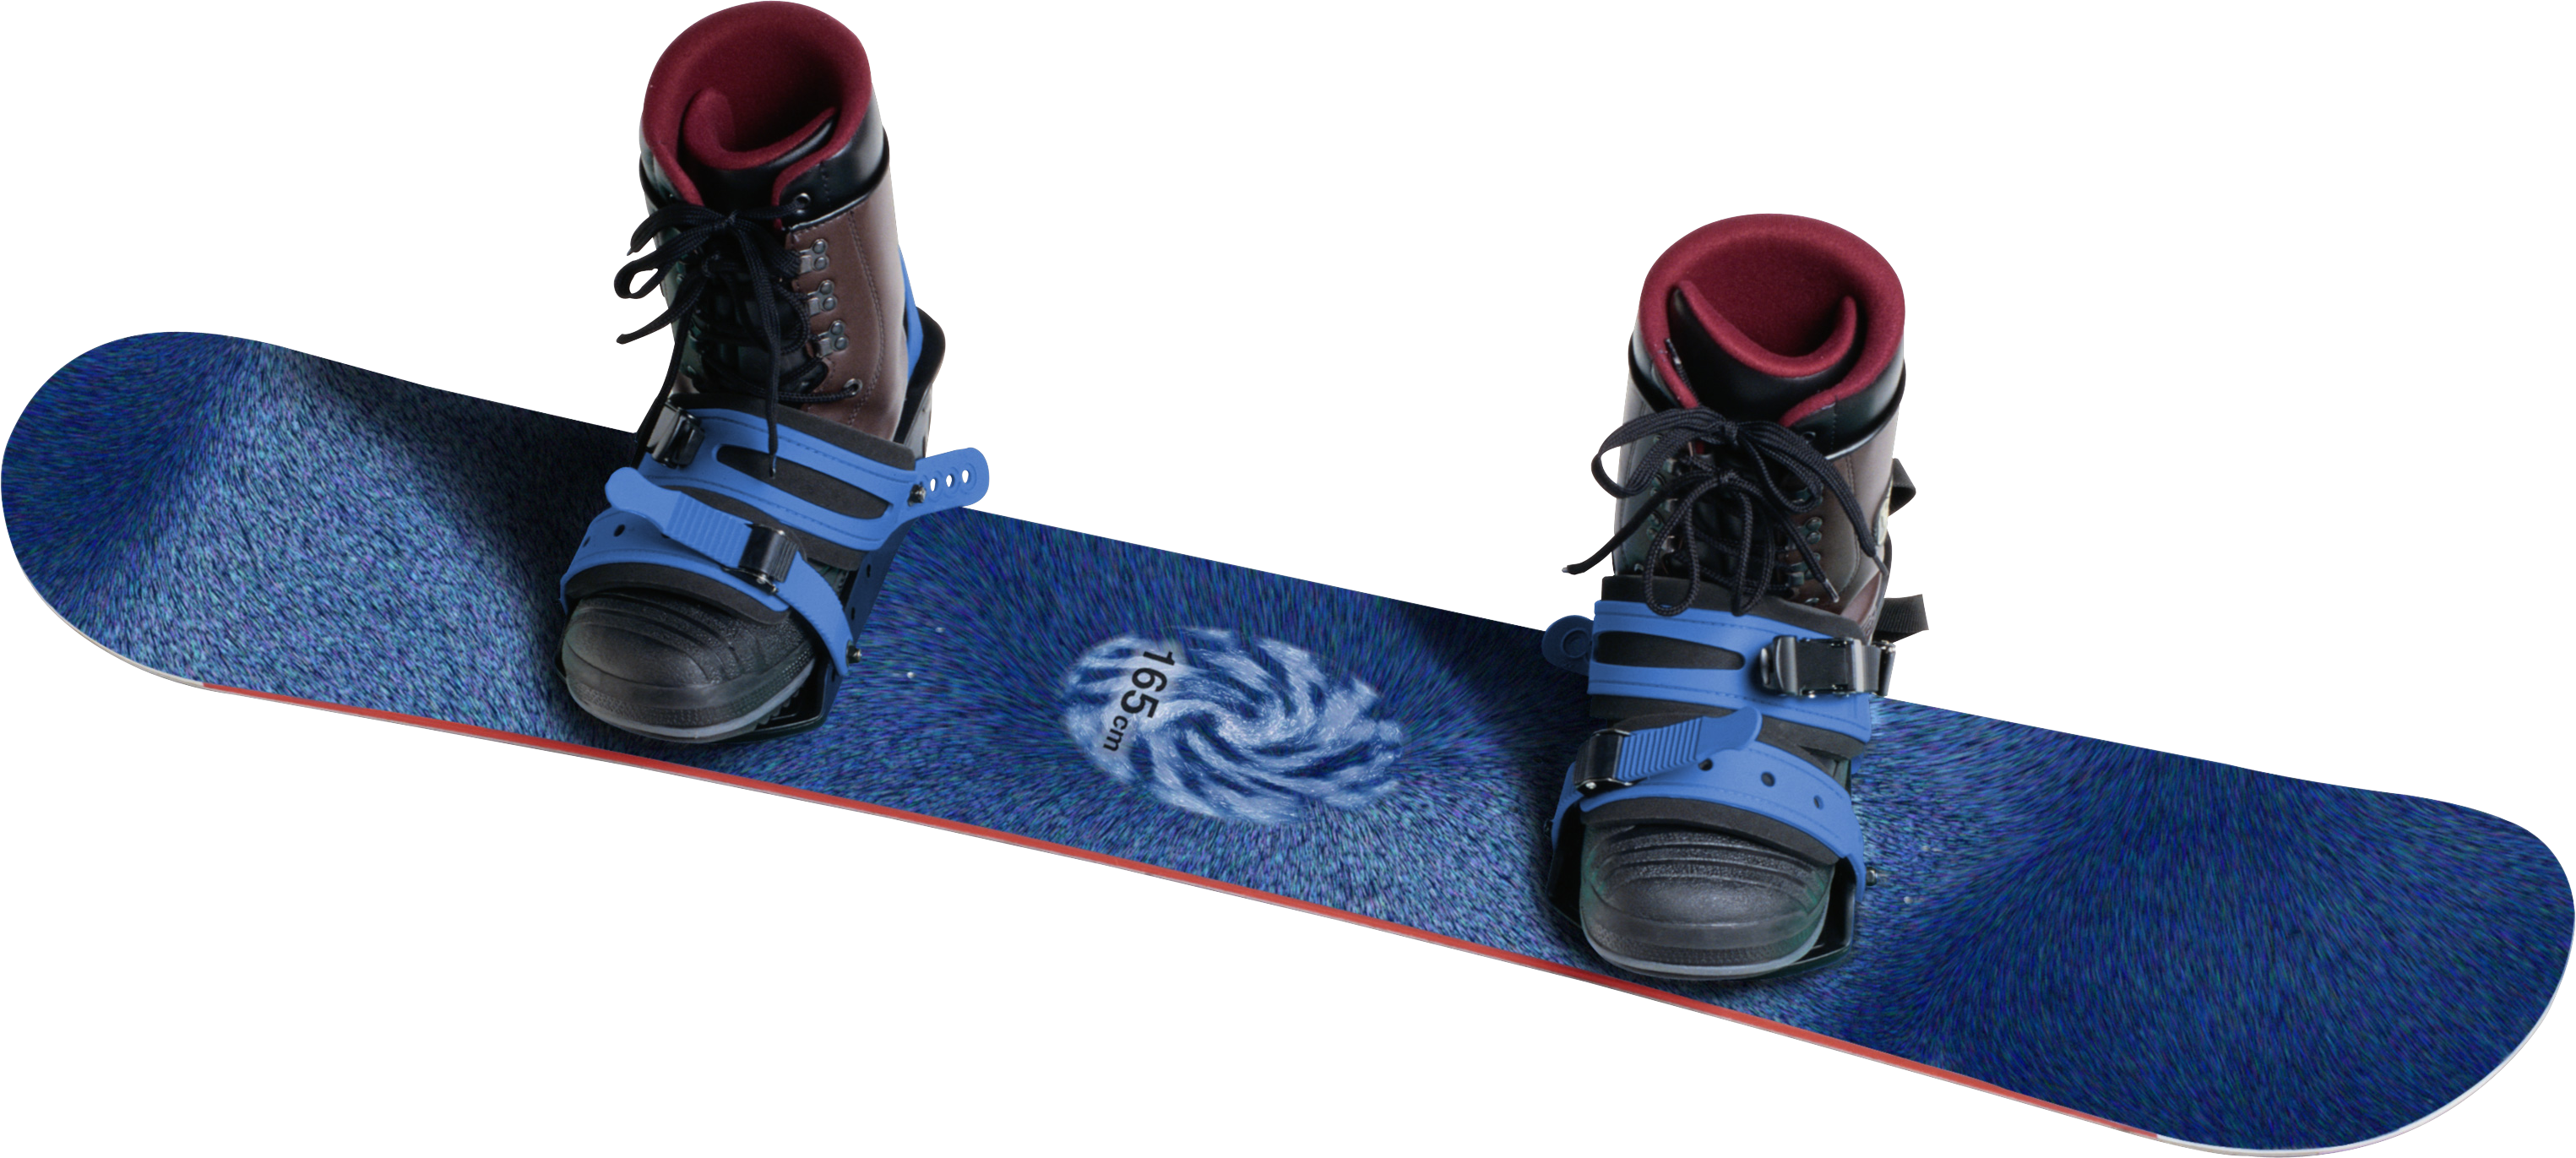 Snowboard PNG Image